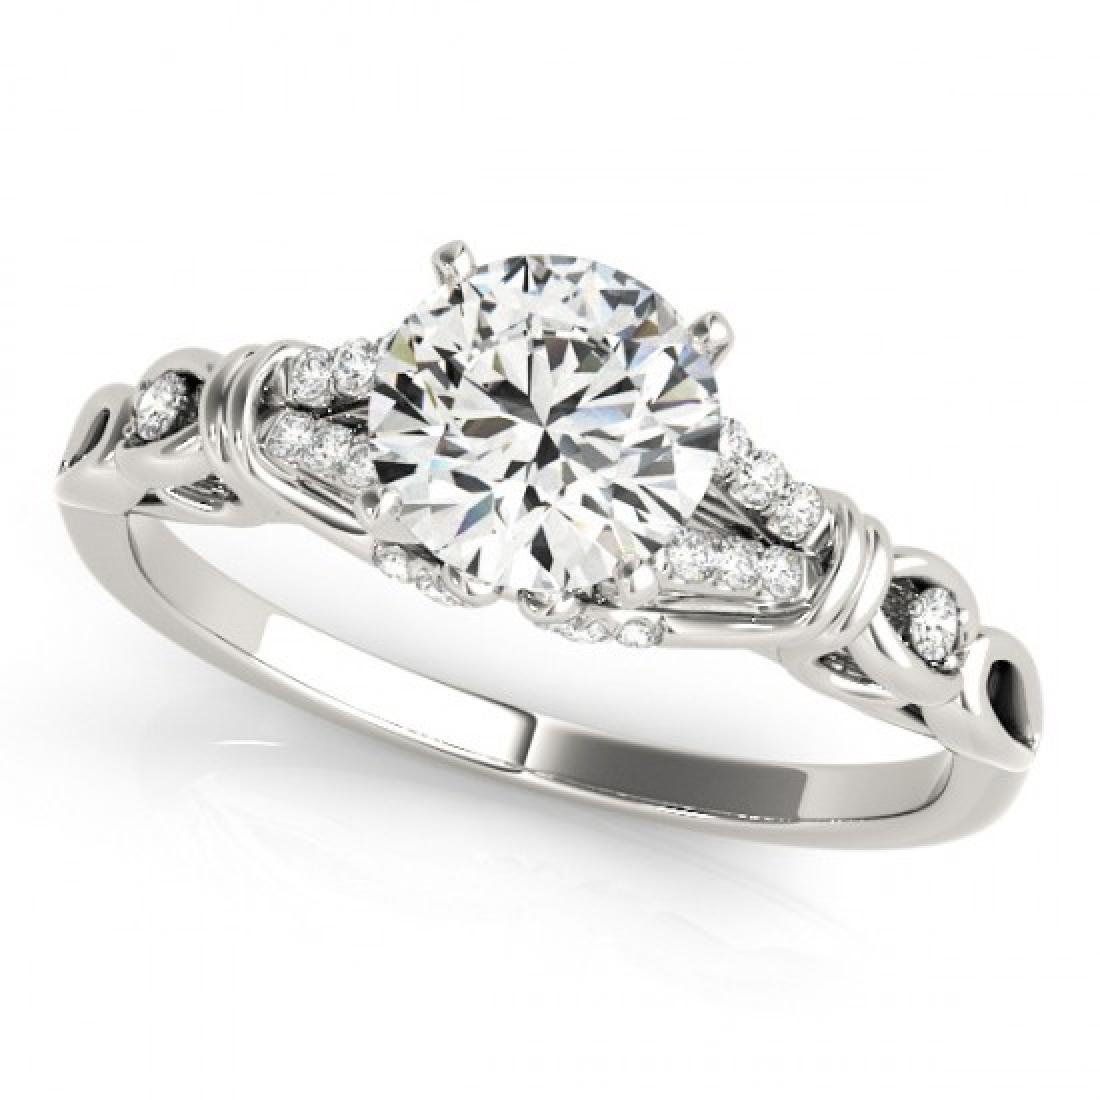 0.7 CTW Certified VS/SI Diamond Solitaire Ring 14K